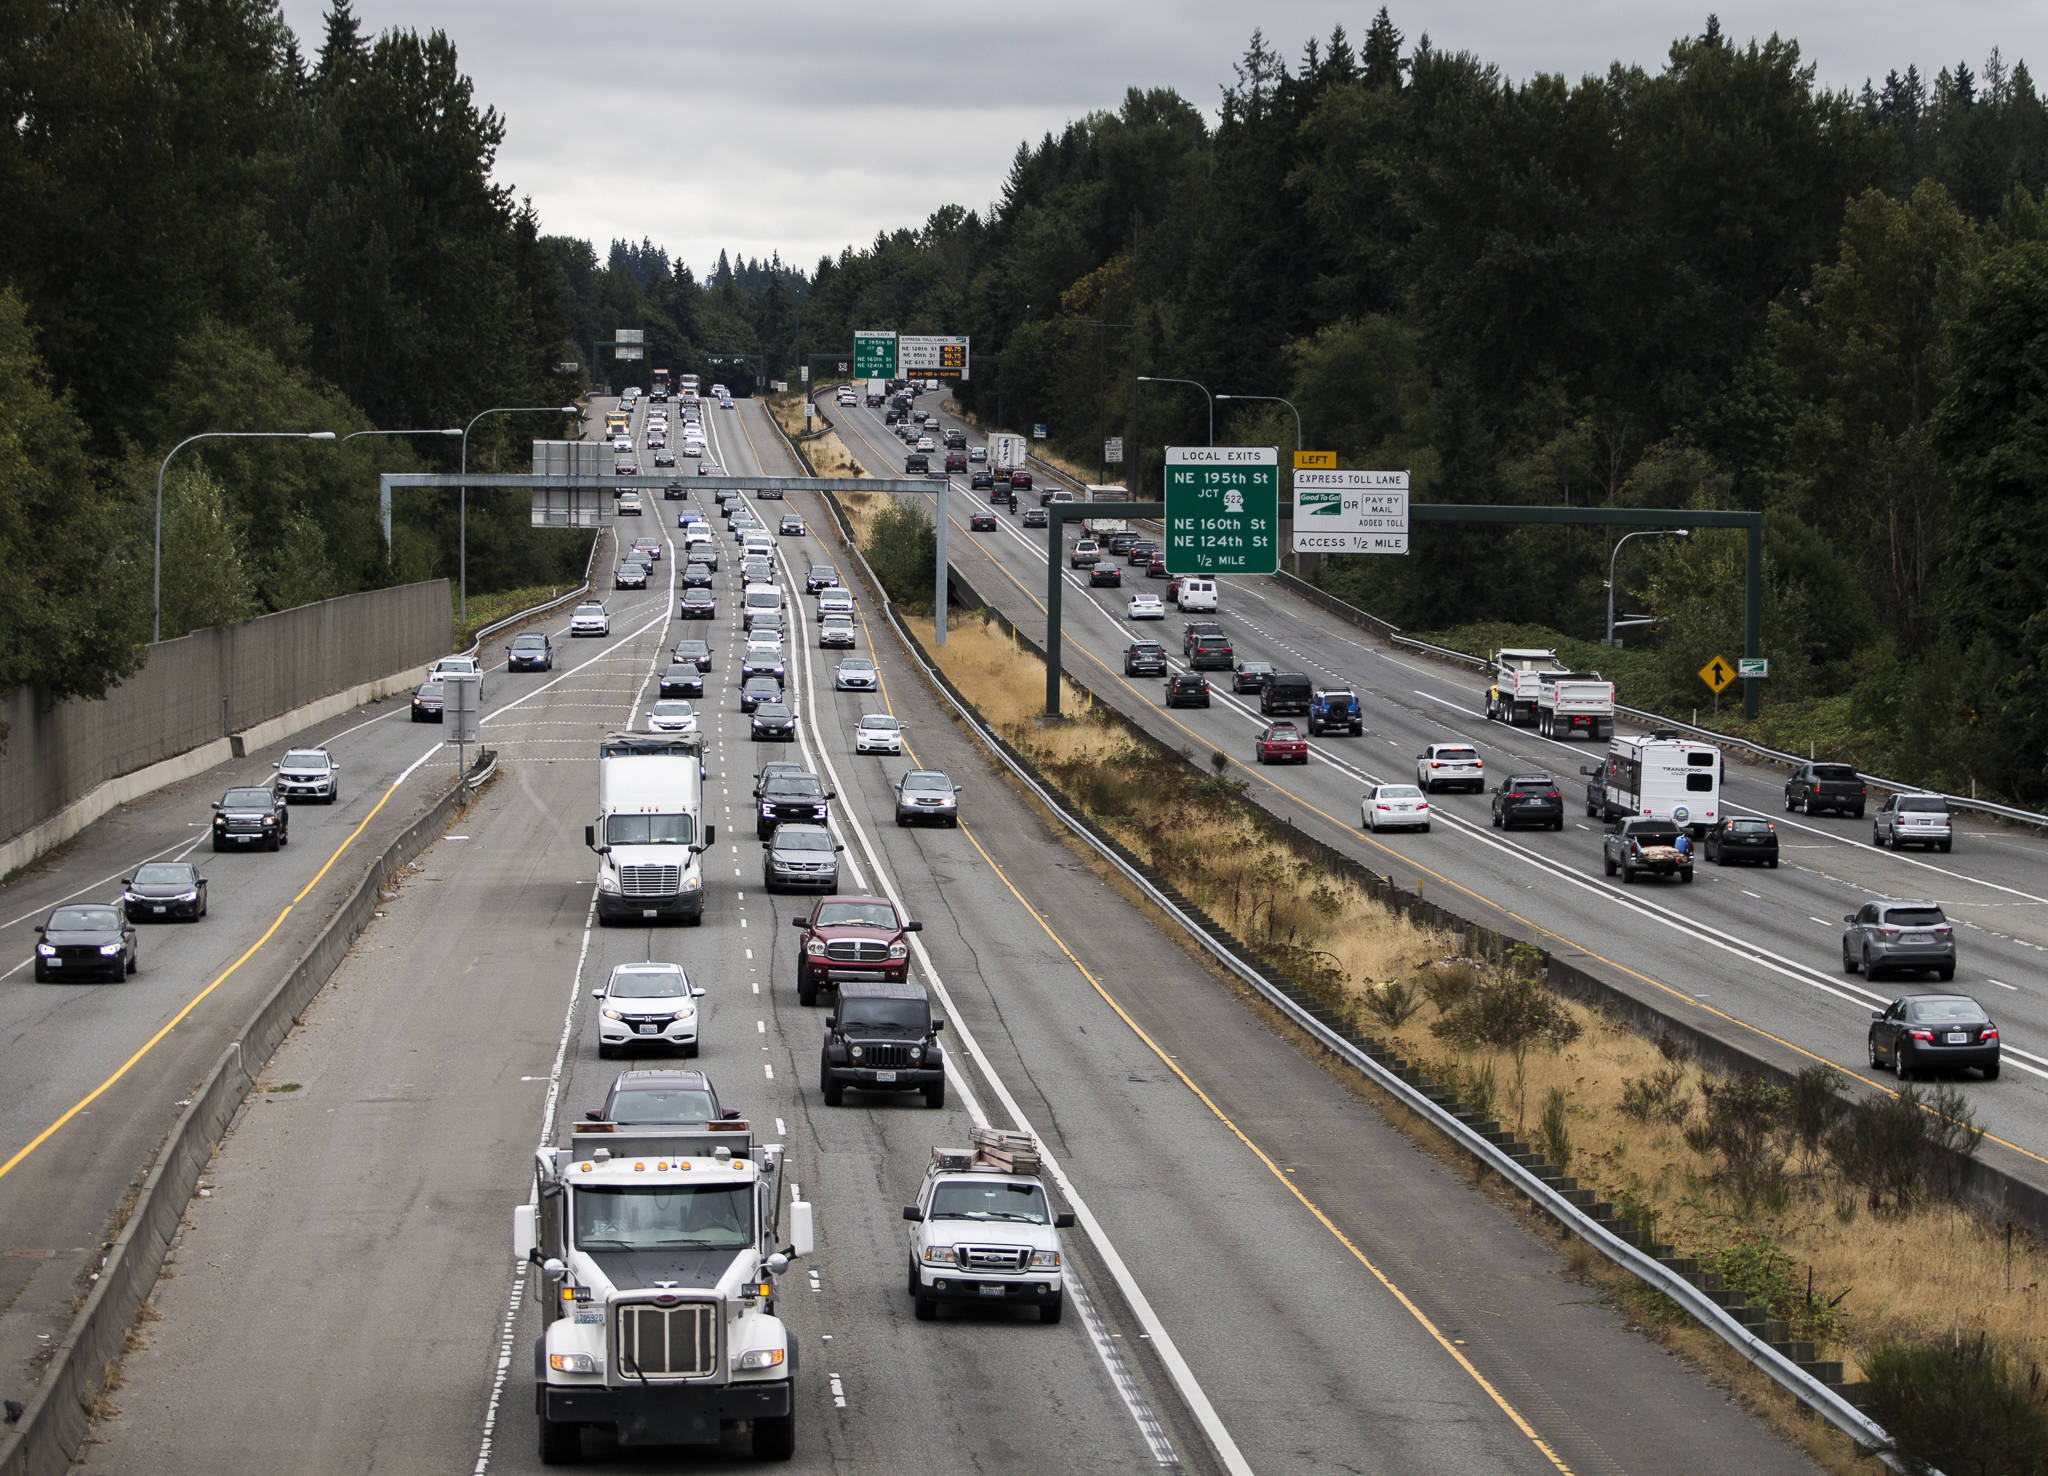 Traffic moves Friday along I-405 between Highway 522 and Highway 527 where WSDOT received federal environmental approval to build a second express toll lane near Bothell. (Olivia Vanni / The Herald)